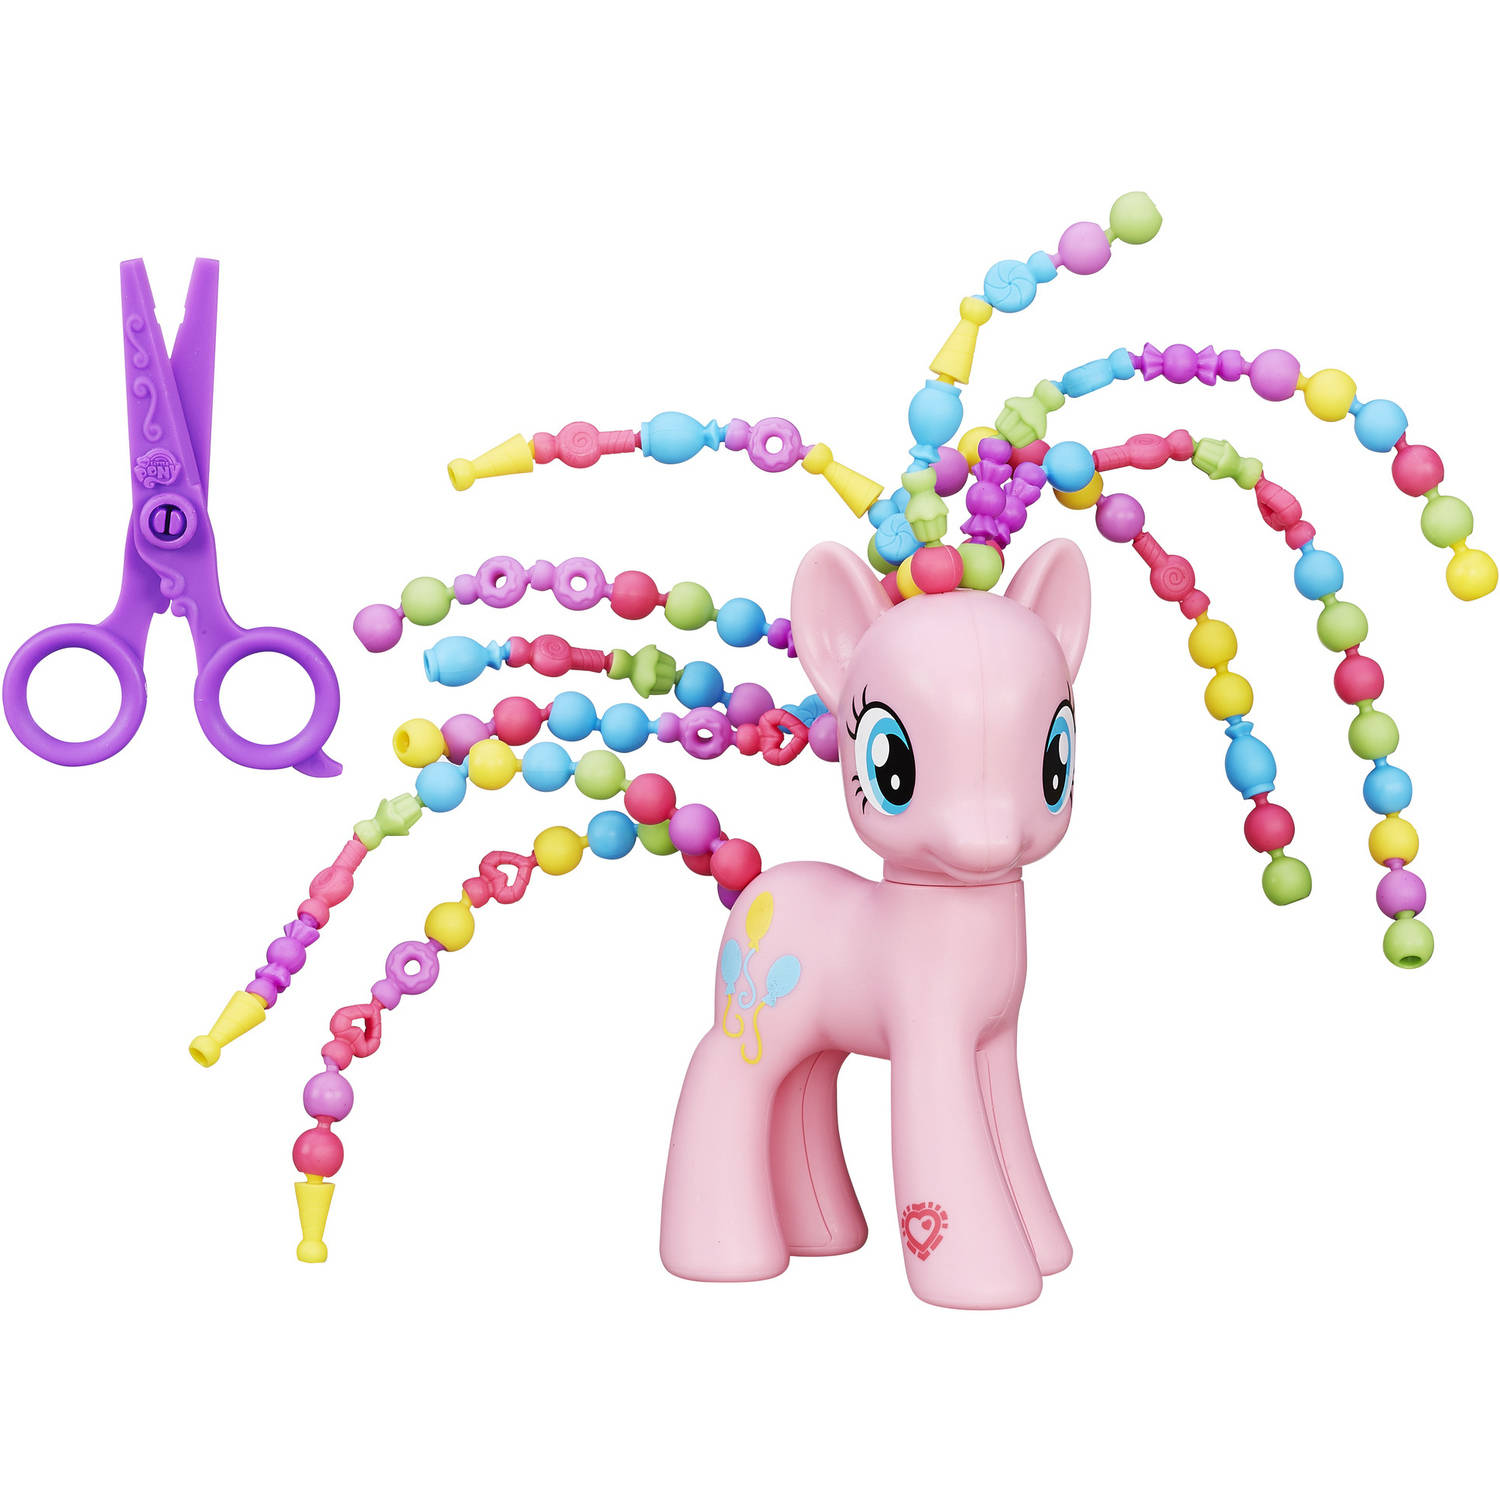 My Little Pony Friendship is Magic Cutie Twisty-Do Pinkie Pie Figure by Hasbro